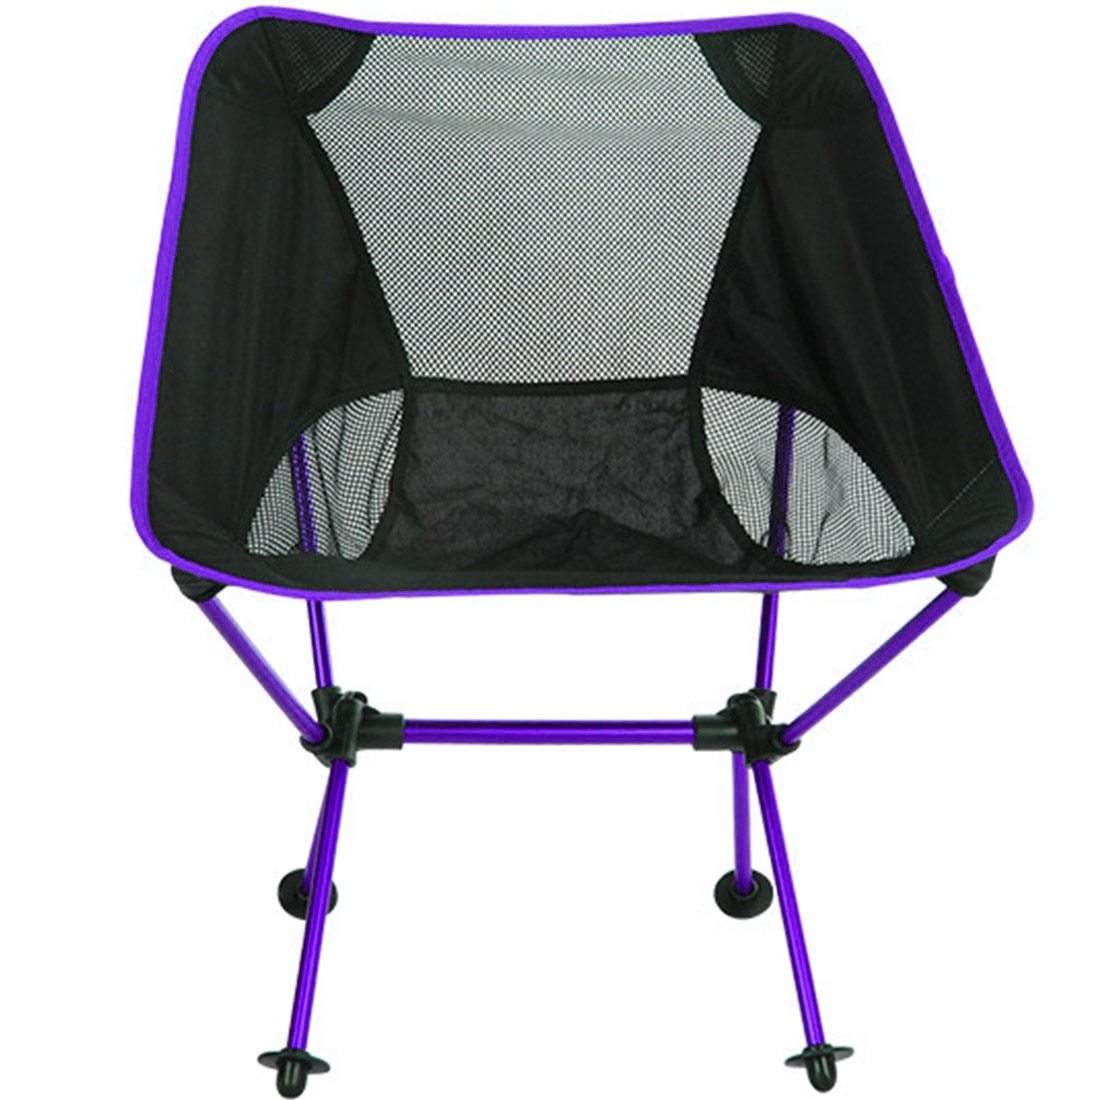 Portable Beach Chair Outdoor Portable Folding Camping Chair Light Fishing Beach Chair Aviation Aluminum Alloy Backrest Recliner